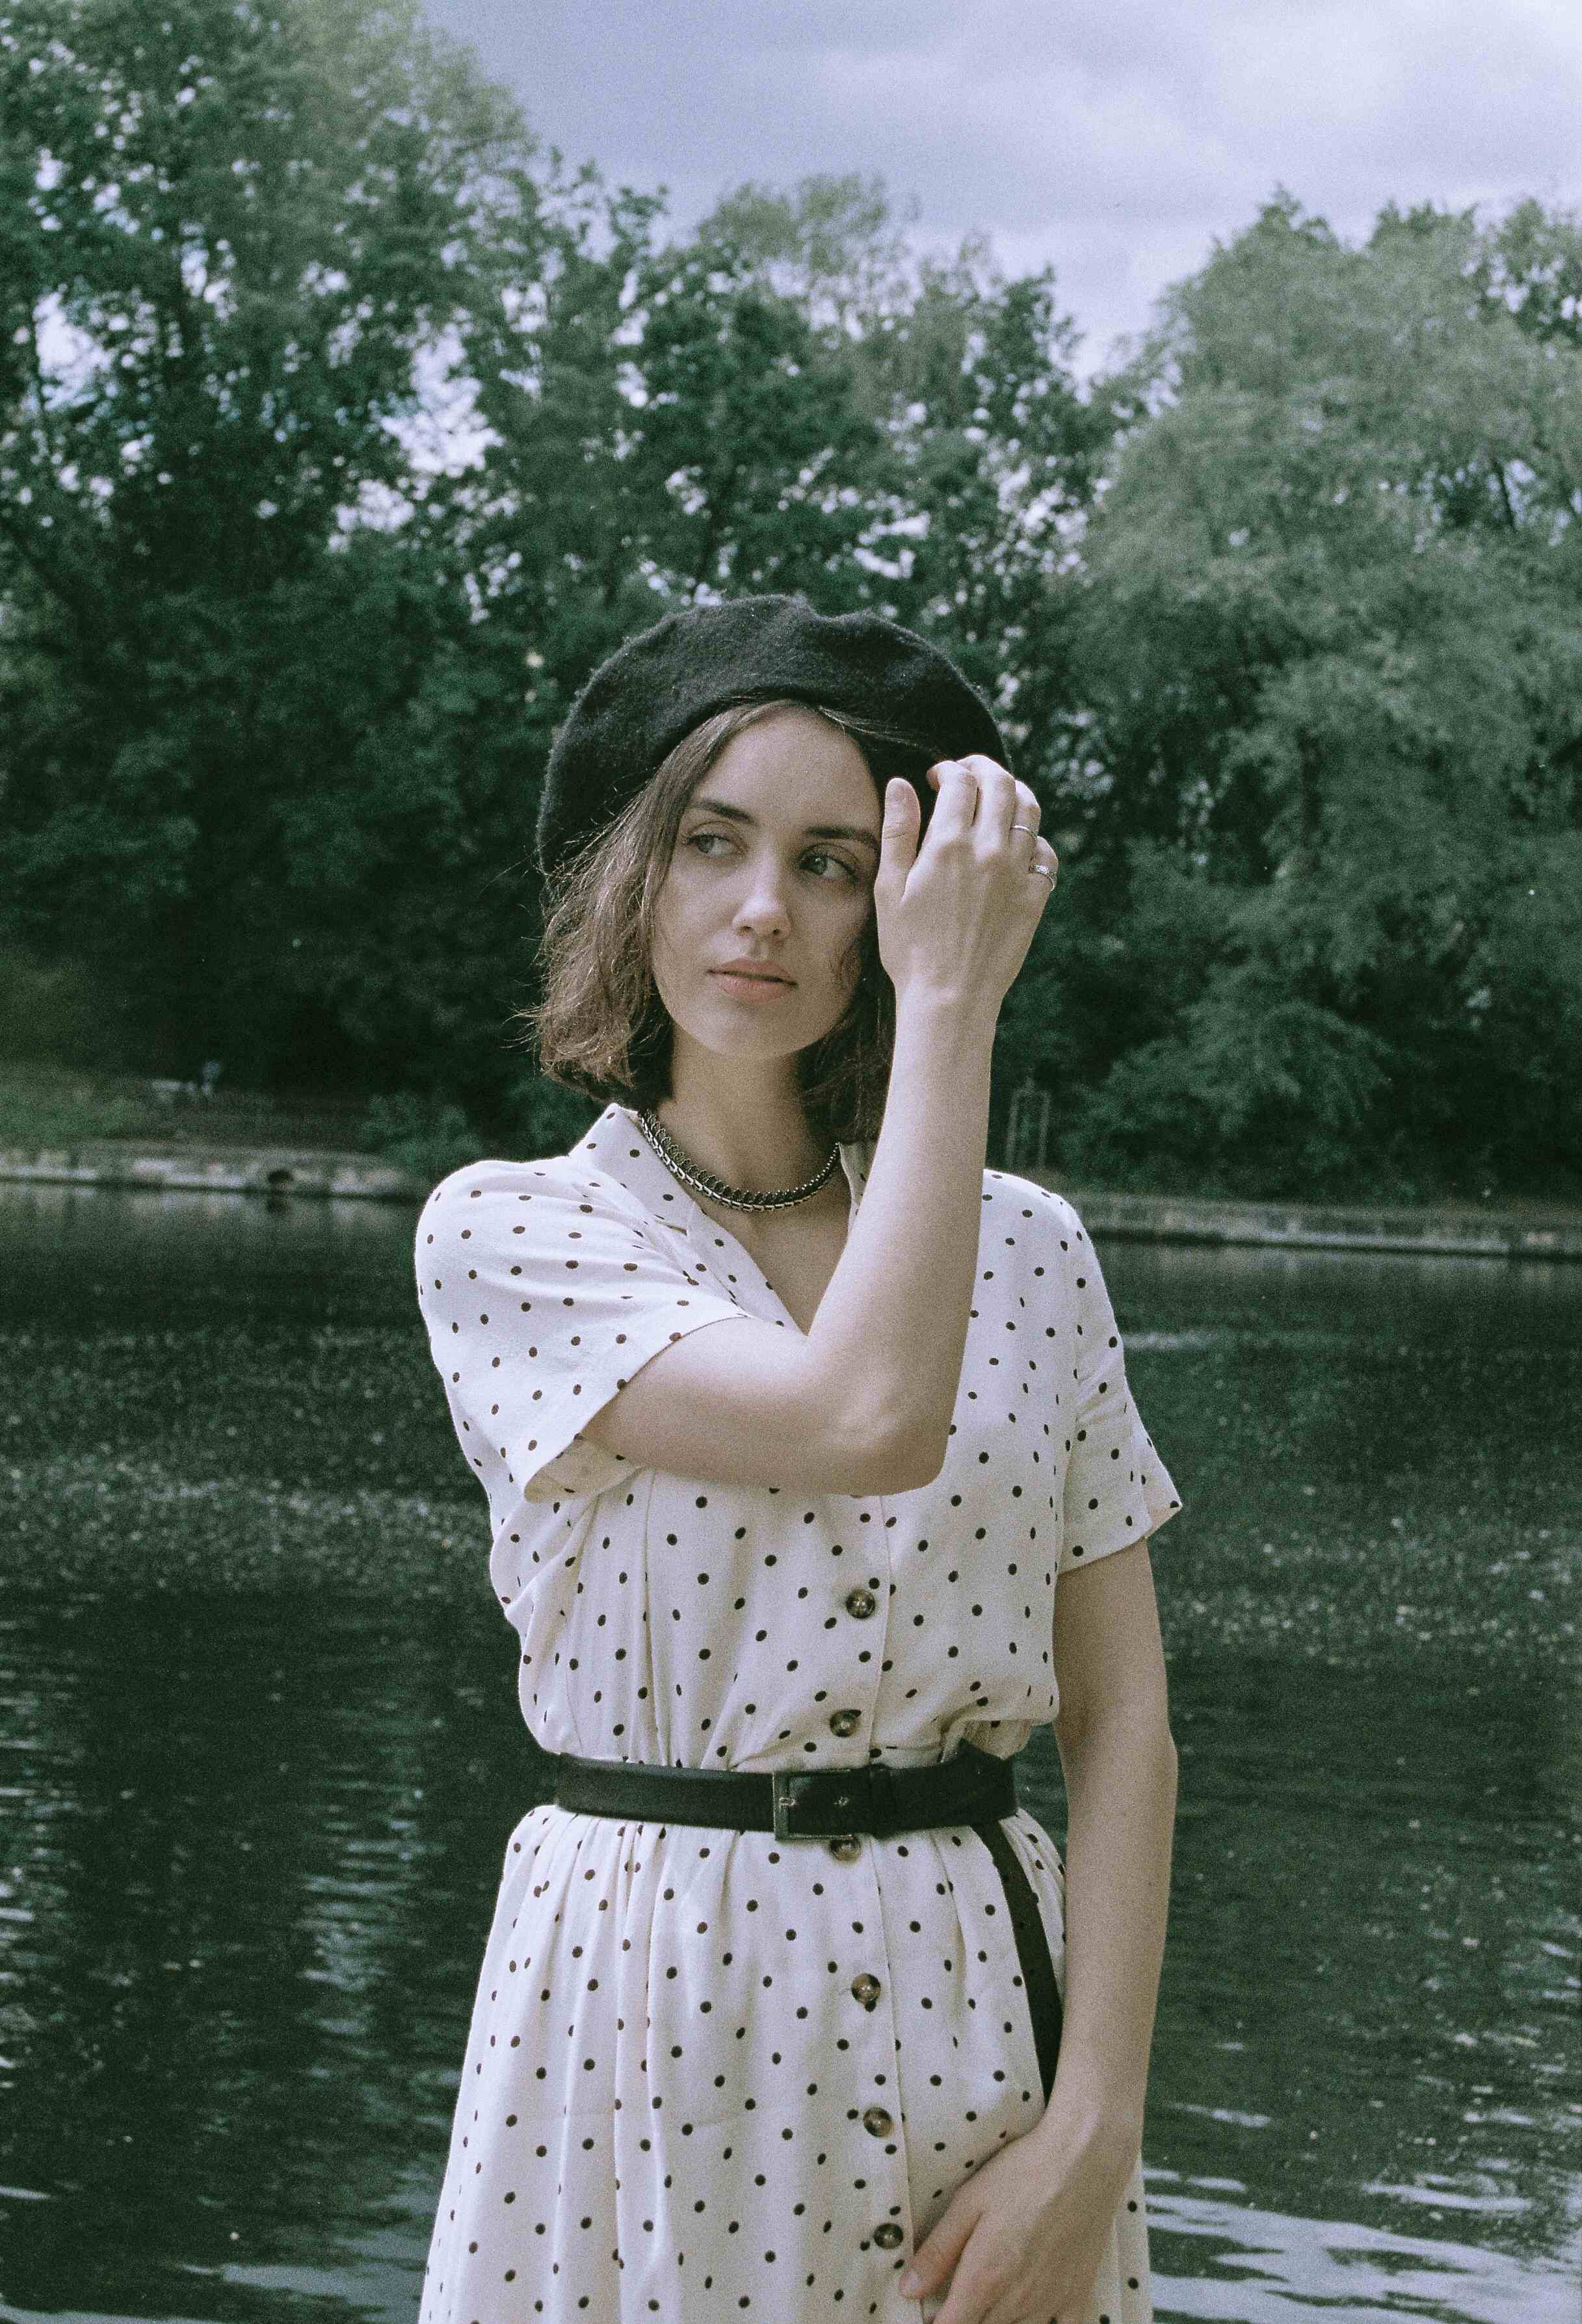 A walk by the river on a warm spring day. Slowly we return to normal and again we'll embrace the small pleasures of life. Photography by Nina Menzel. Muse: Alexandra Tischenko.